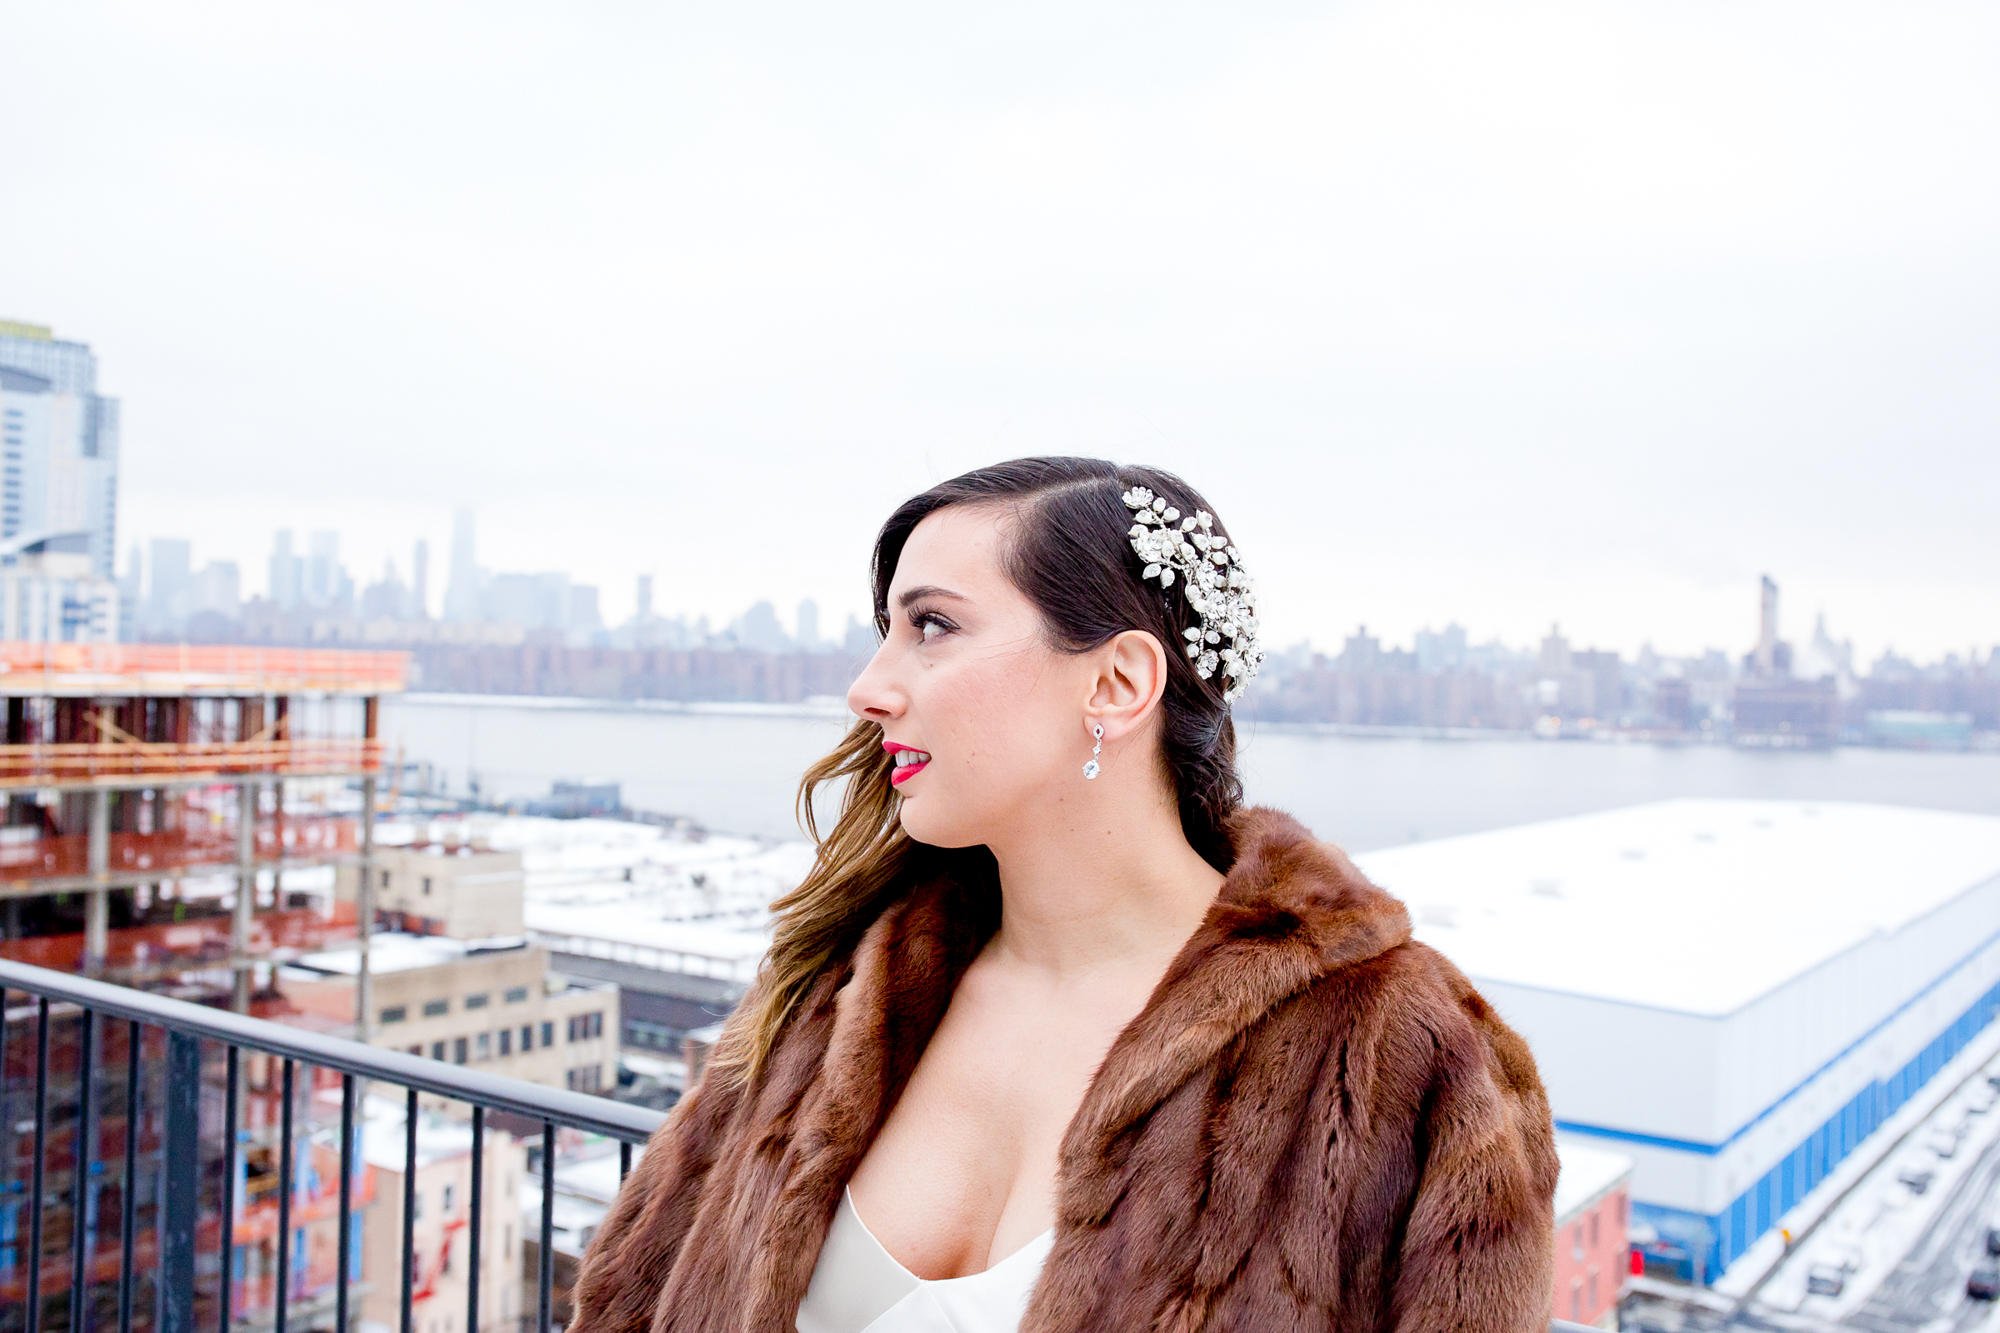 010_CarlyGaebe_SteadfastStudio_WeddingPhotography_NewYorkCity_Brooklyn_WytheHotel_Retro_Bride_Rooftop_Winter.jpg